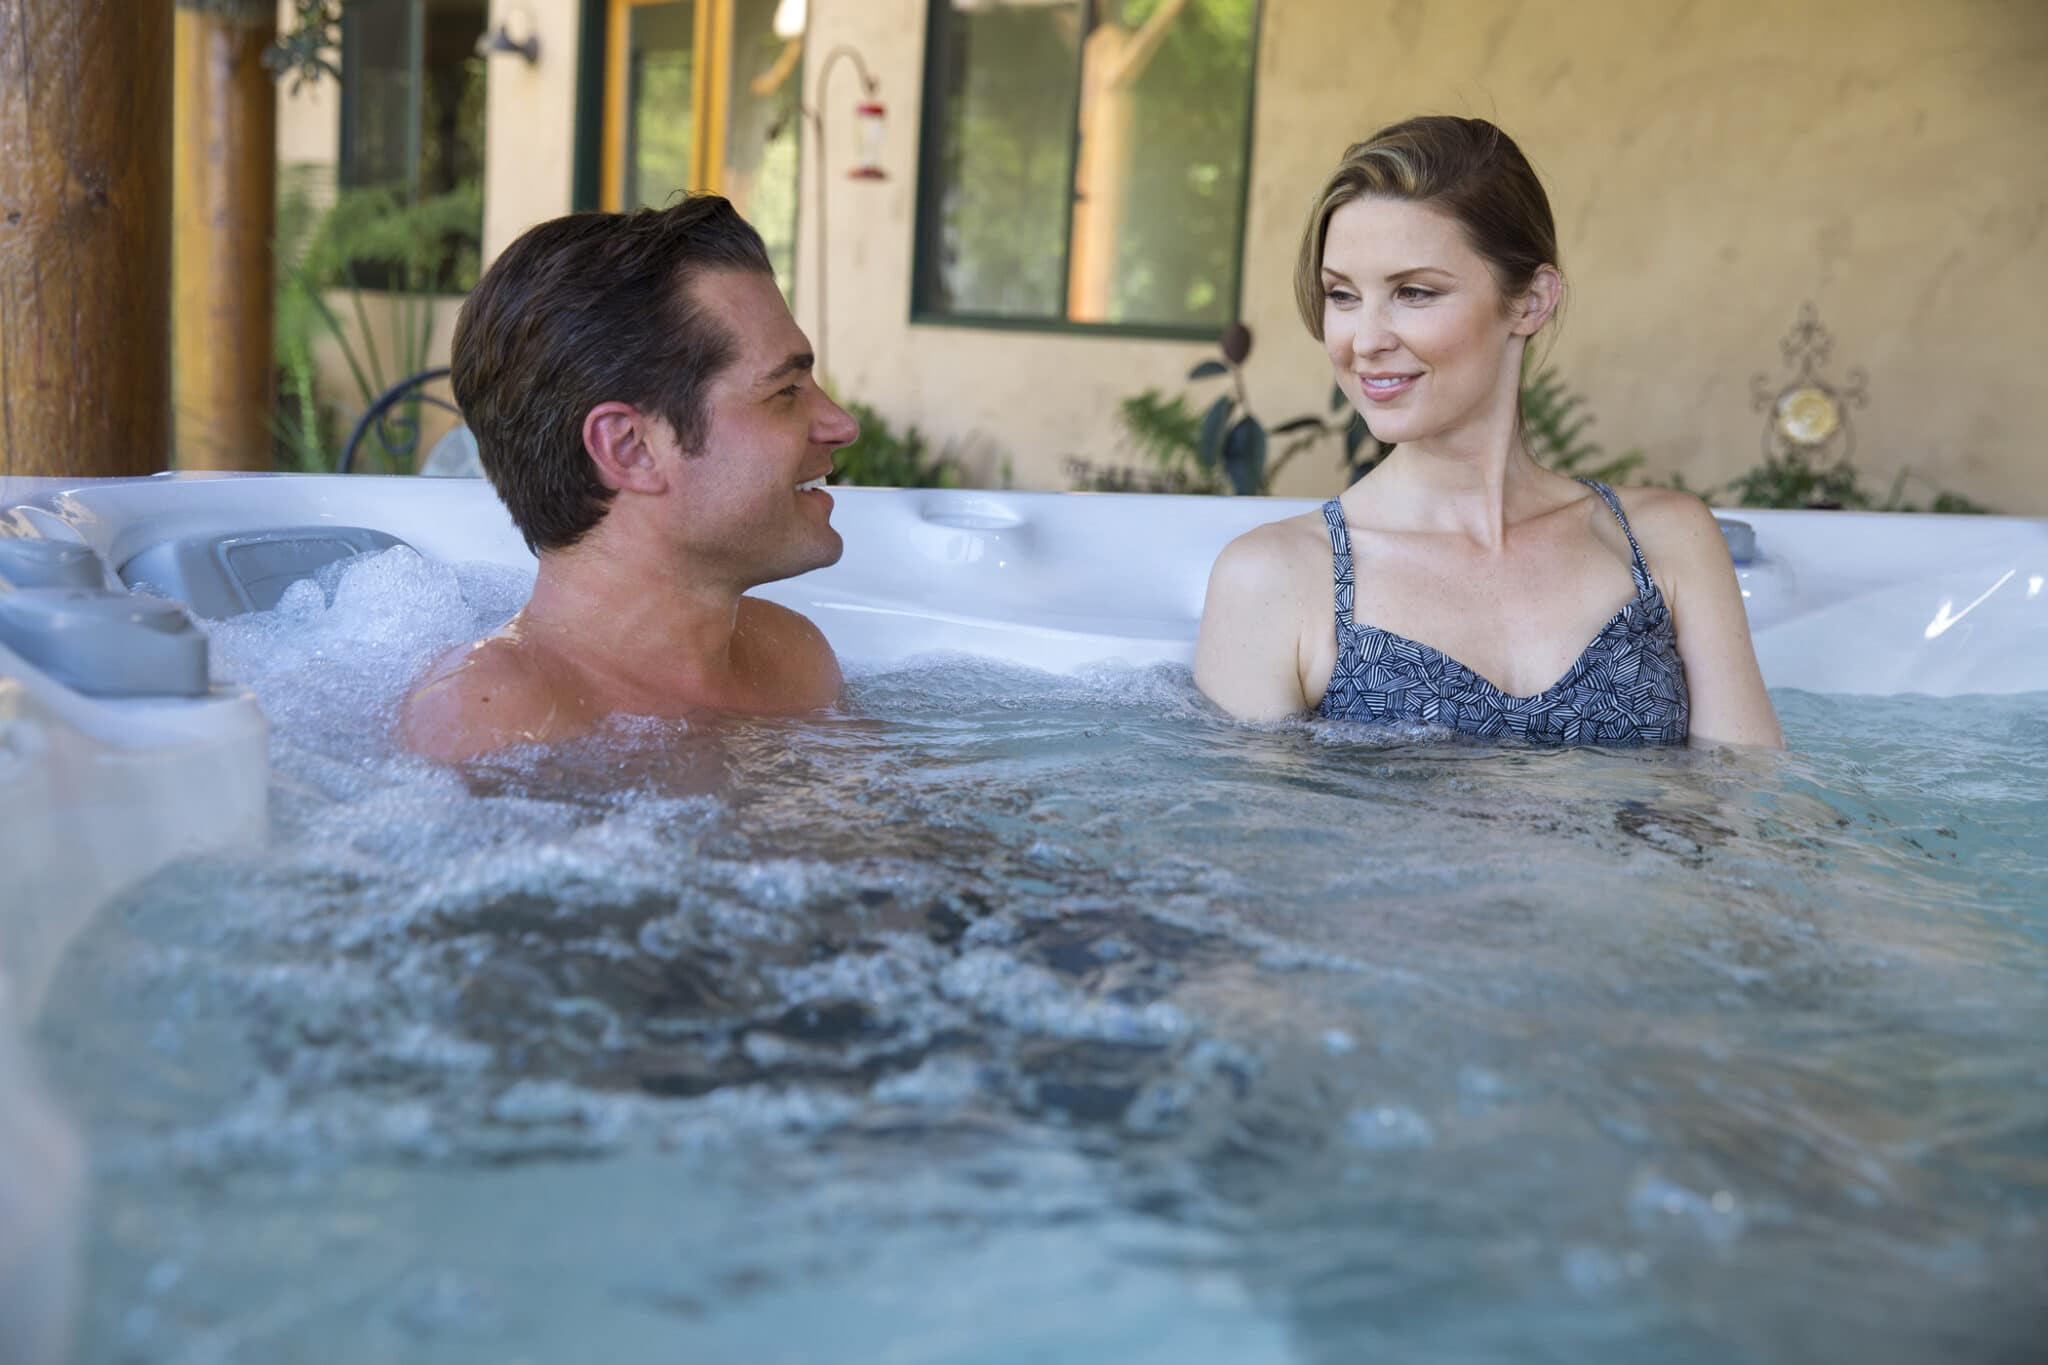 Man and woman soaking inside of a hot tub.